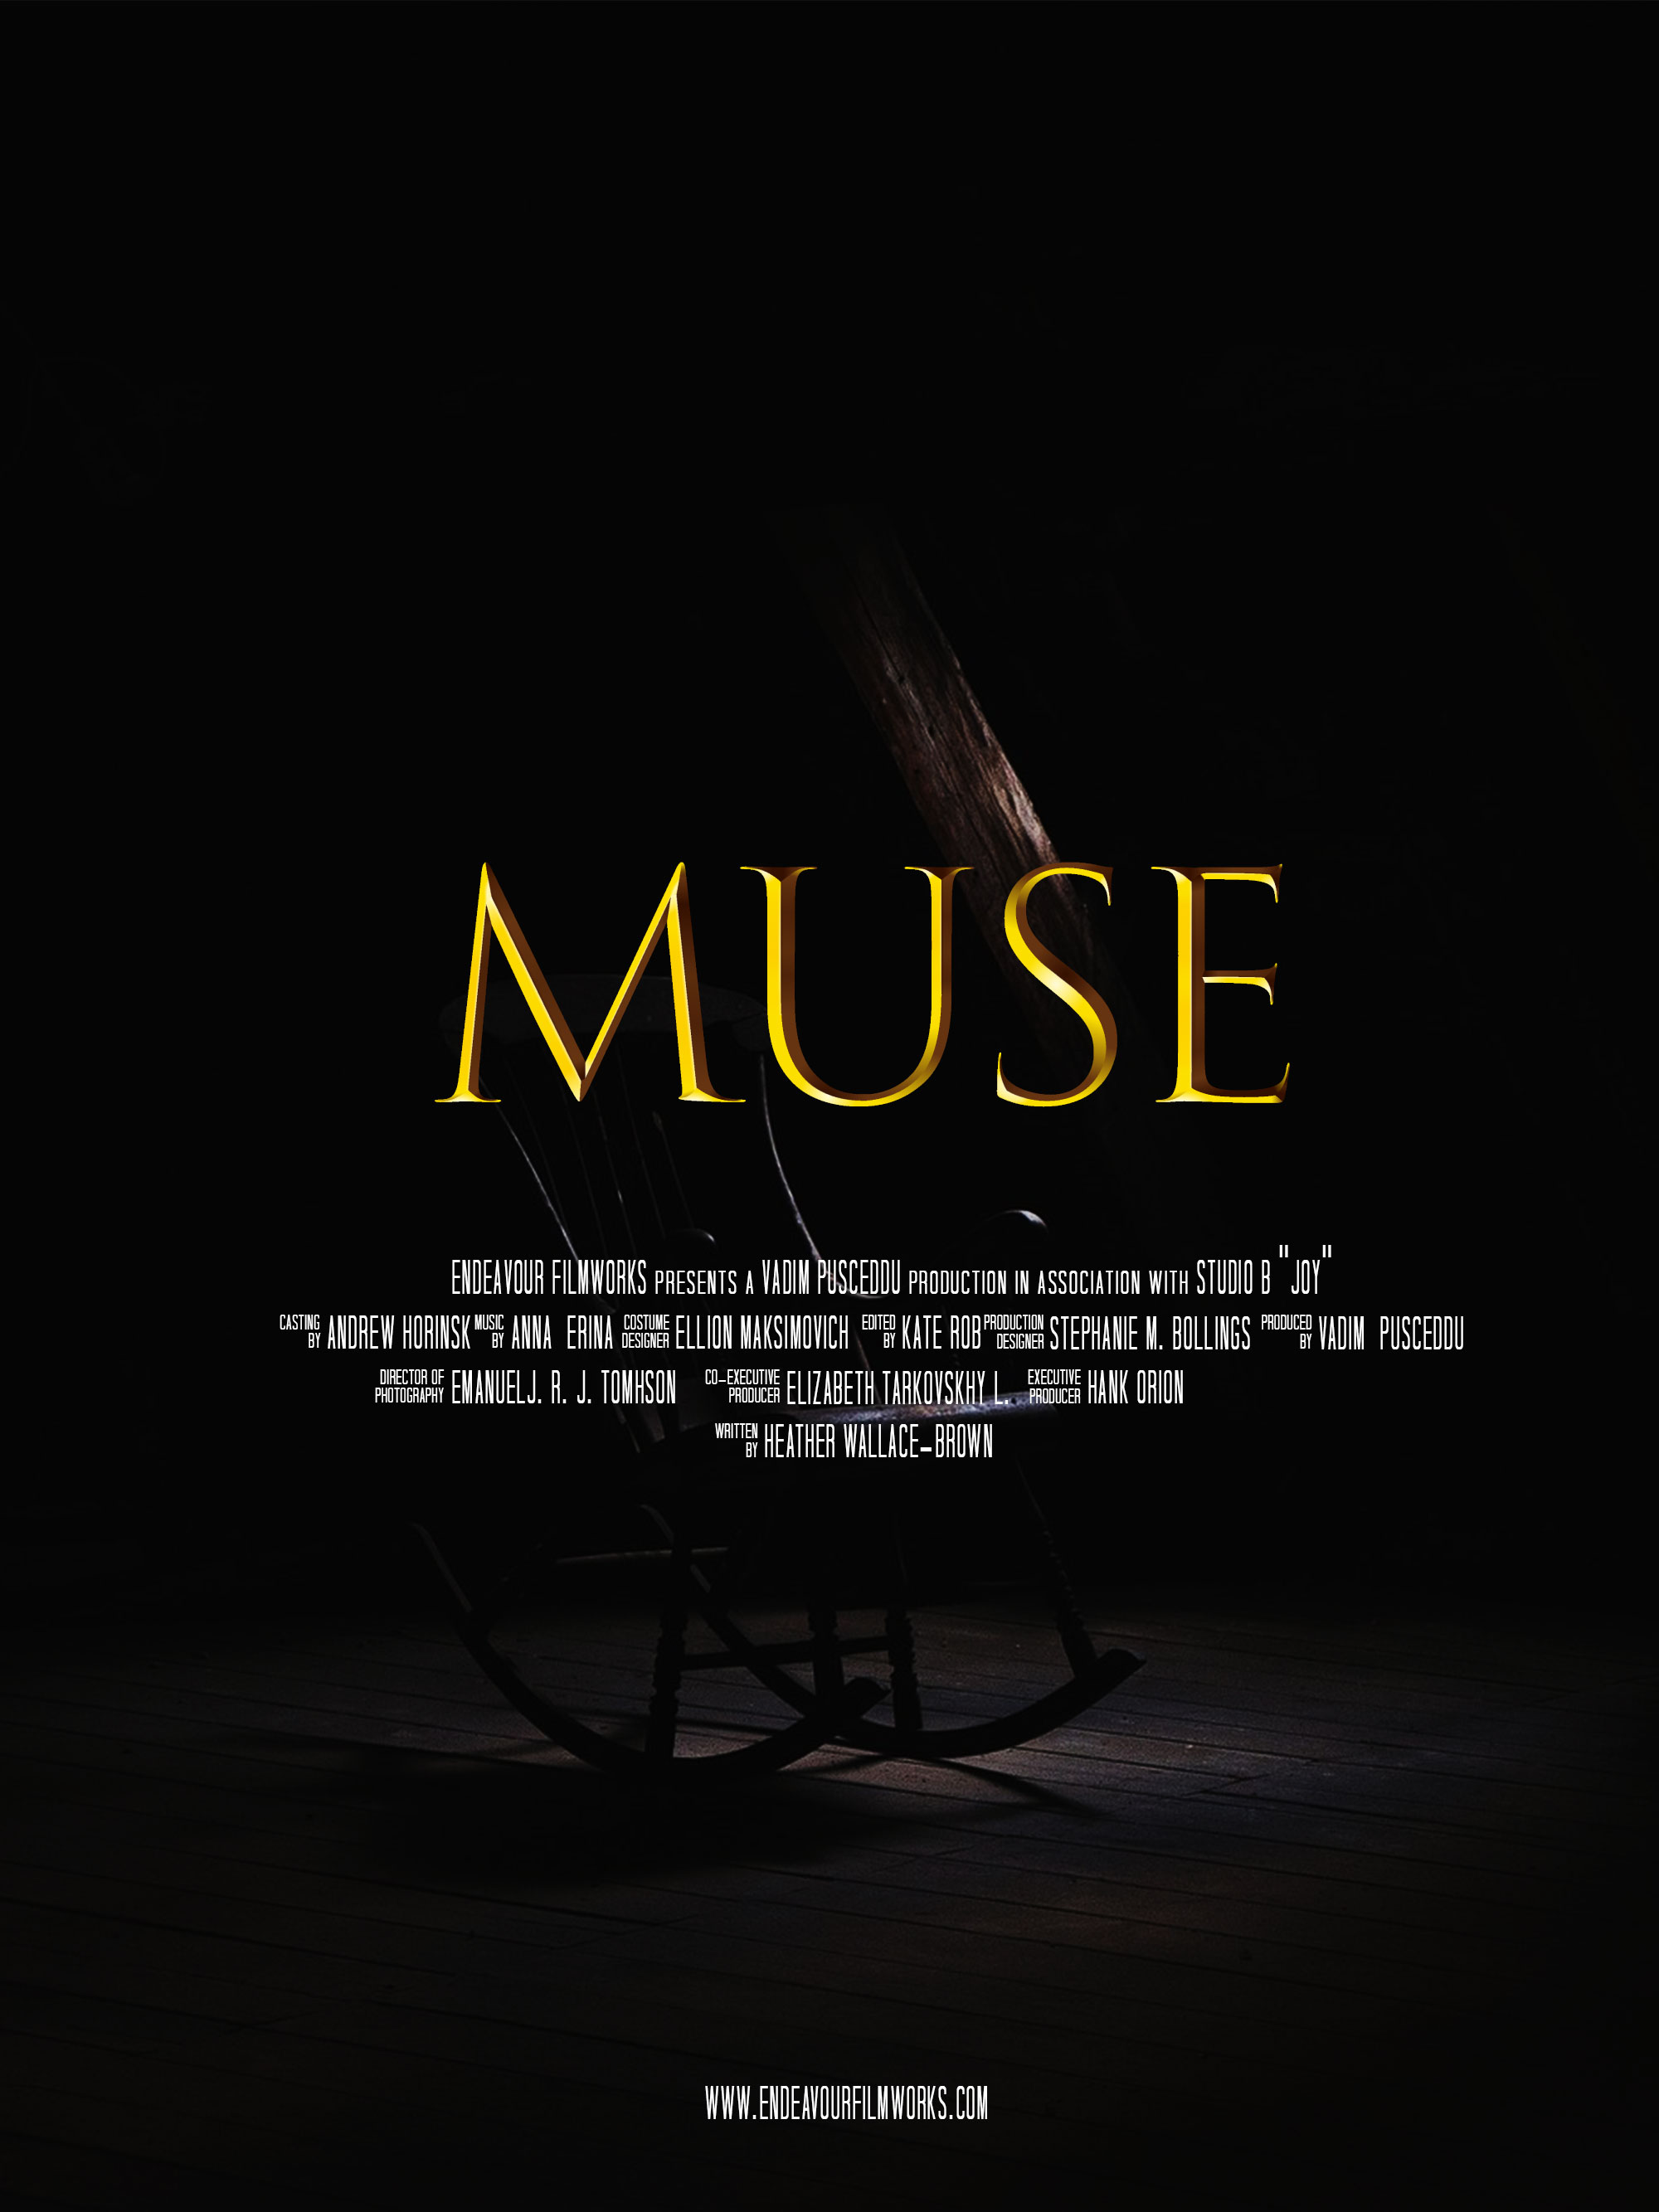 muse-poster.jpg